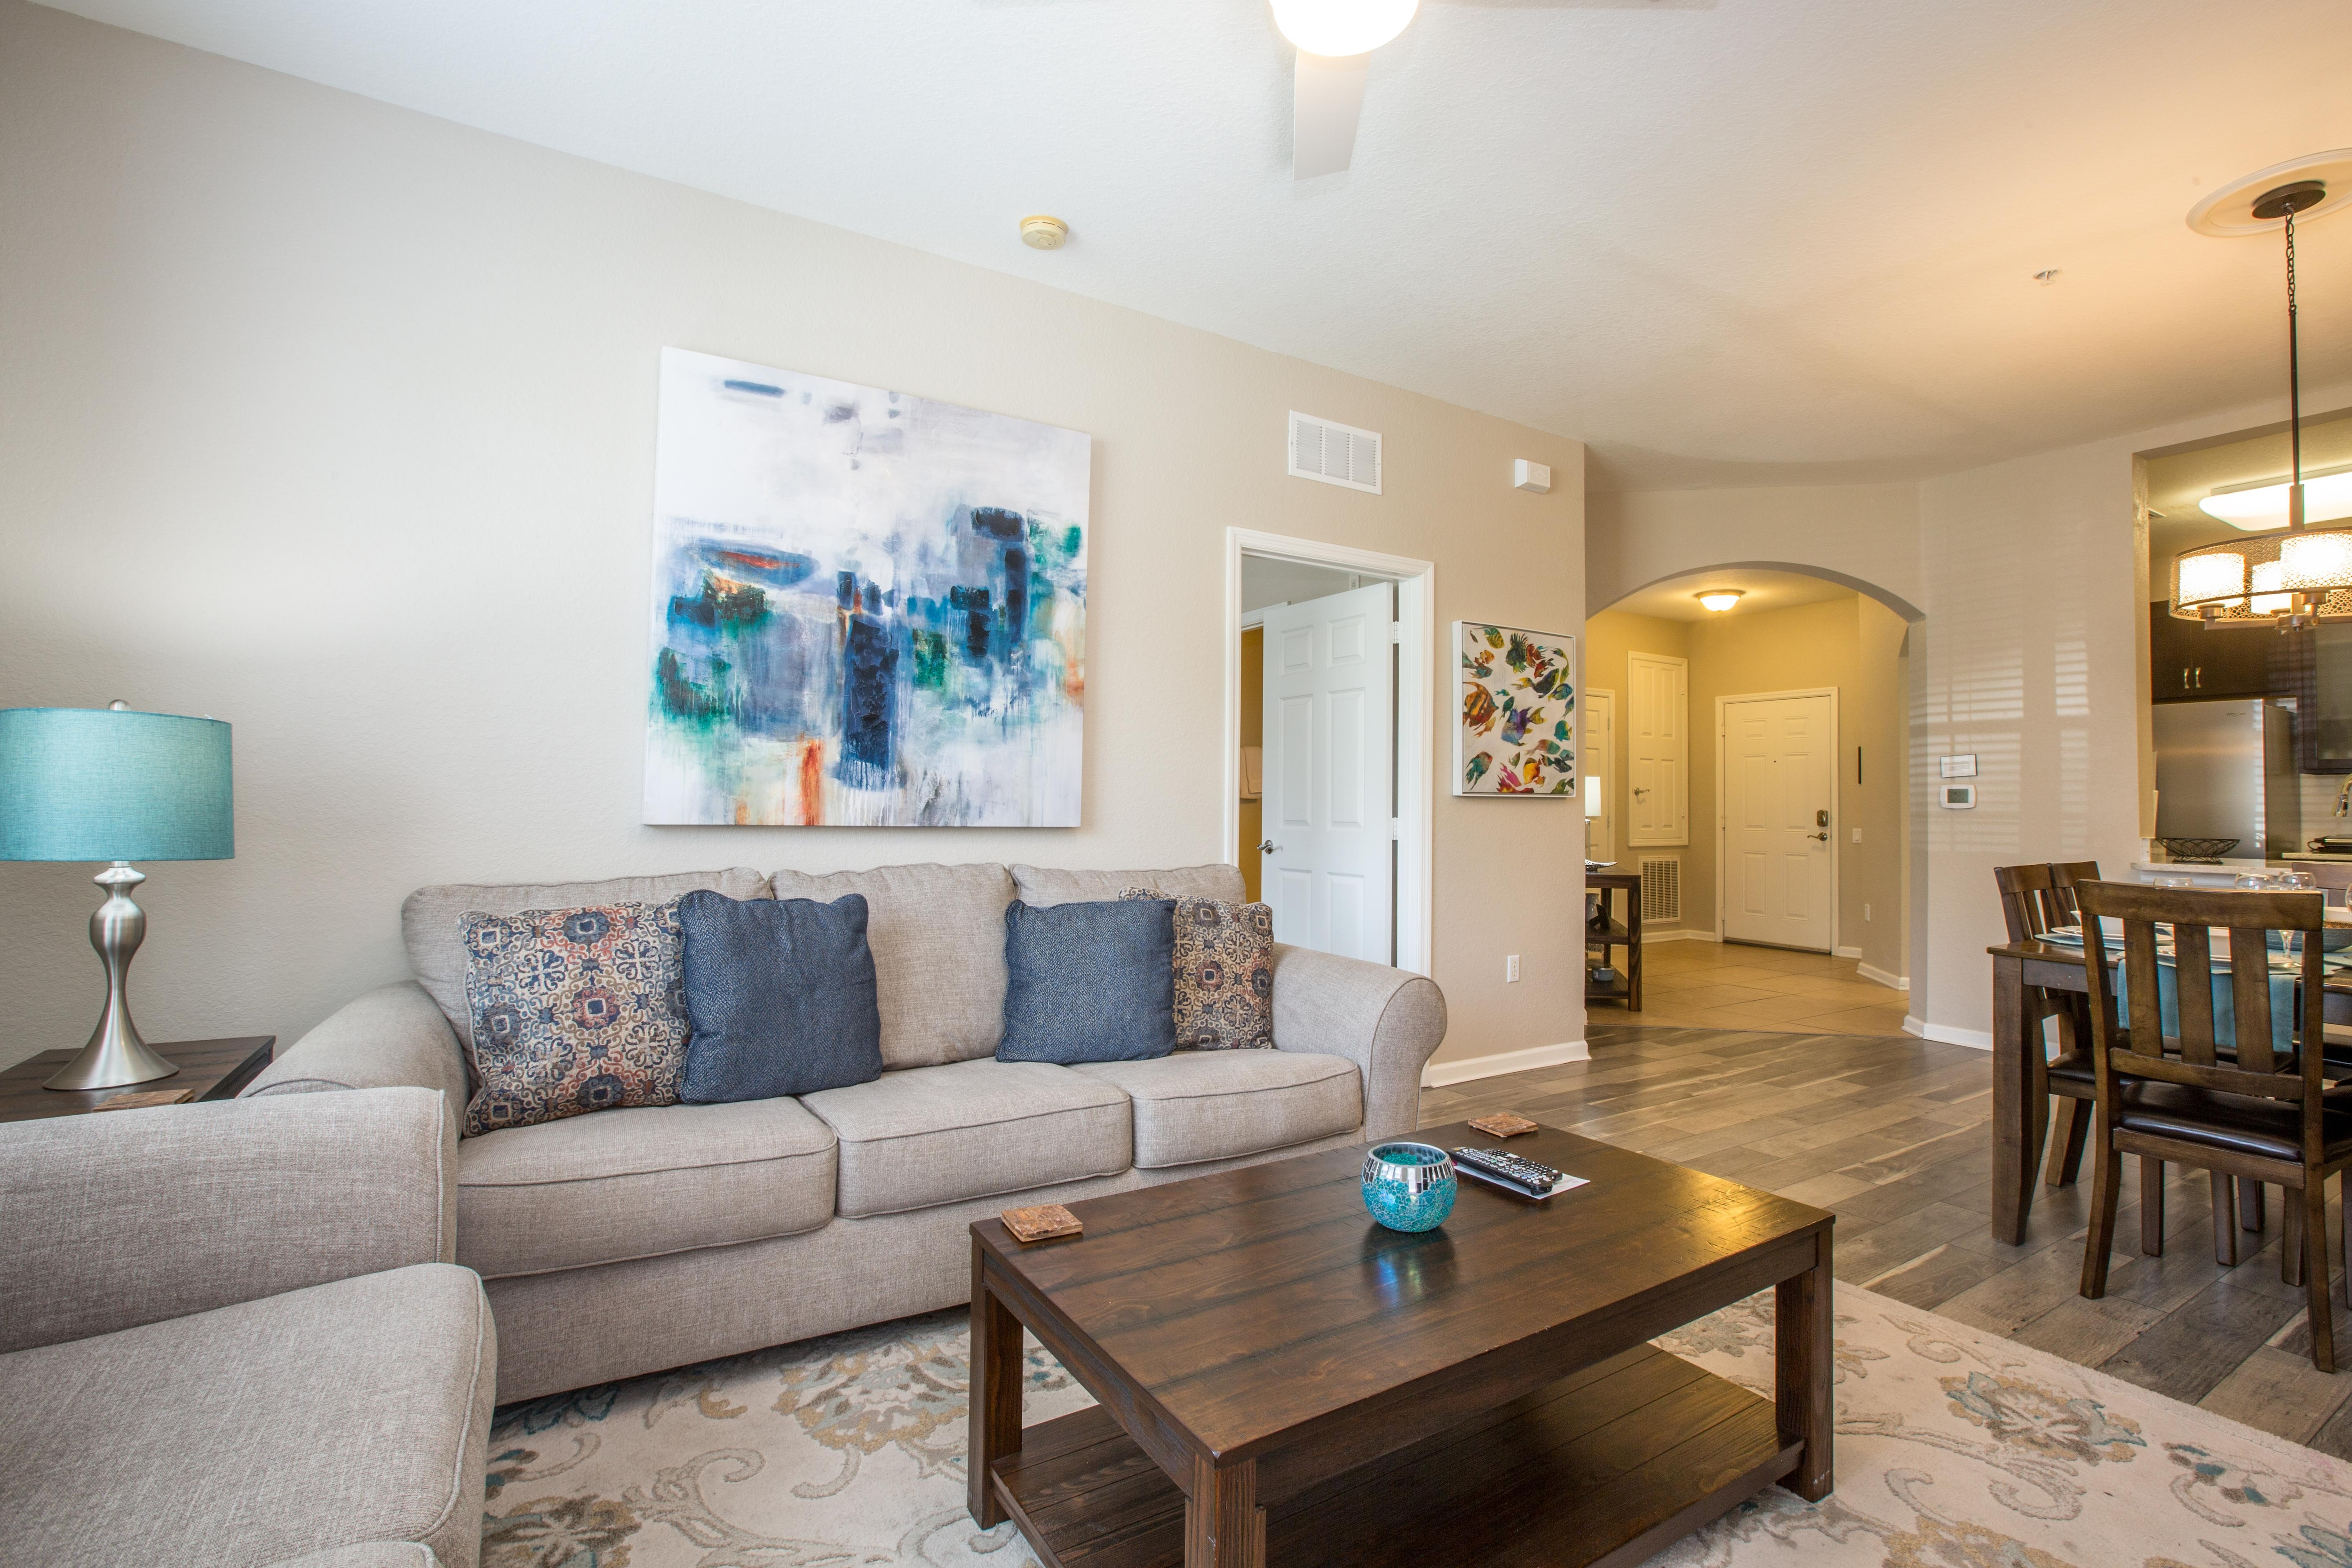 Cute and Cozy Vista Cay Condo with Private Patio